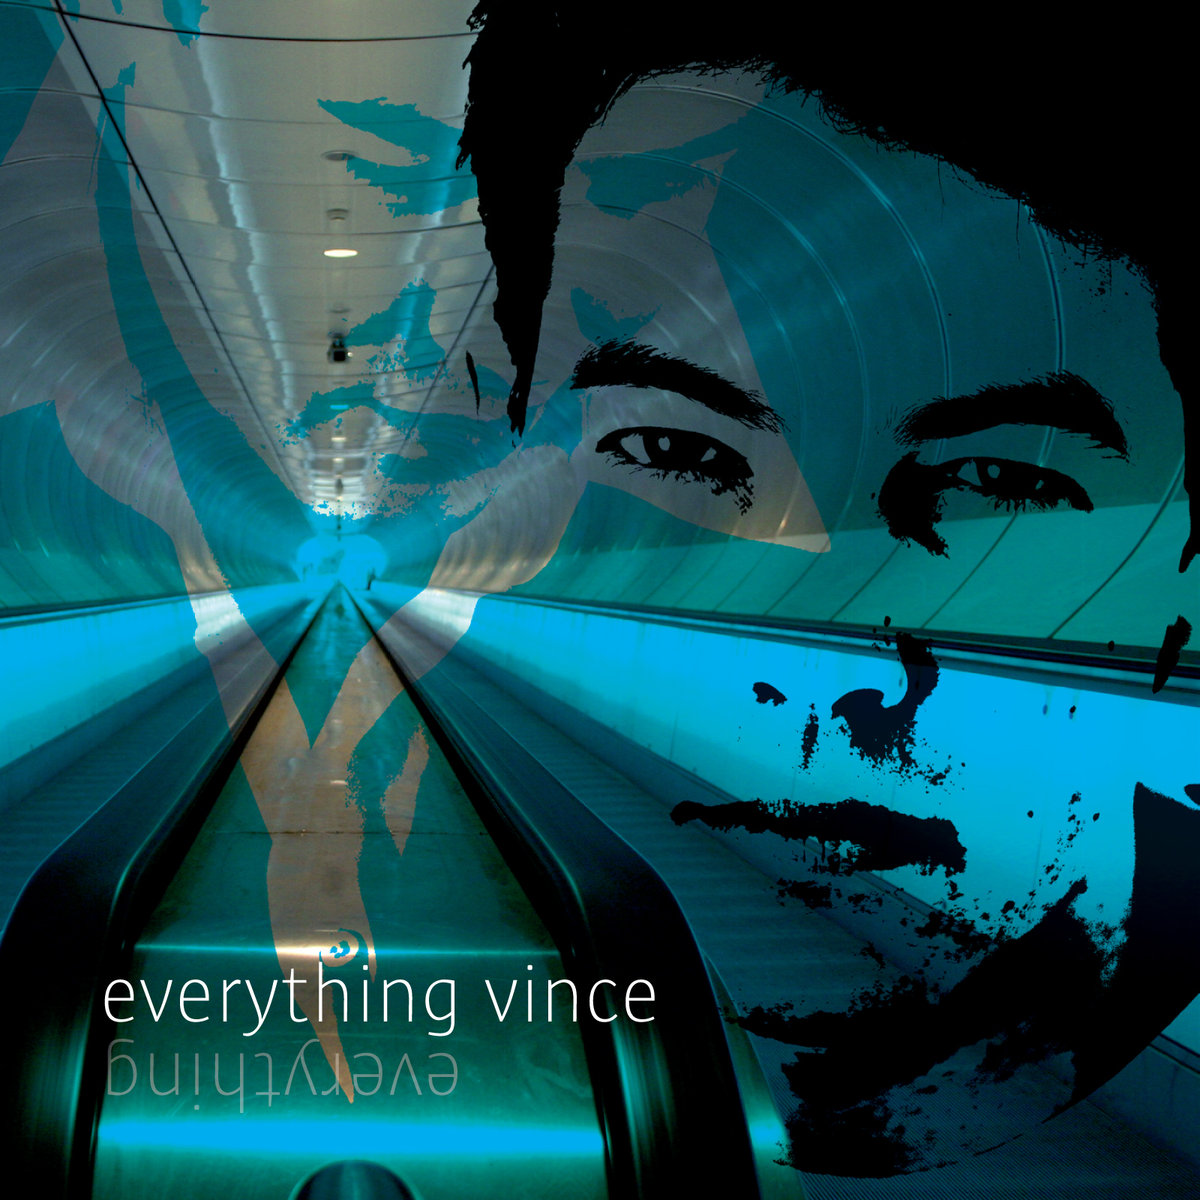 Vince - The Moon is our Moon @ 'Everything' album (pop, pop punk)